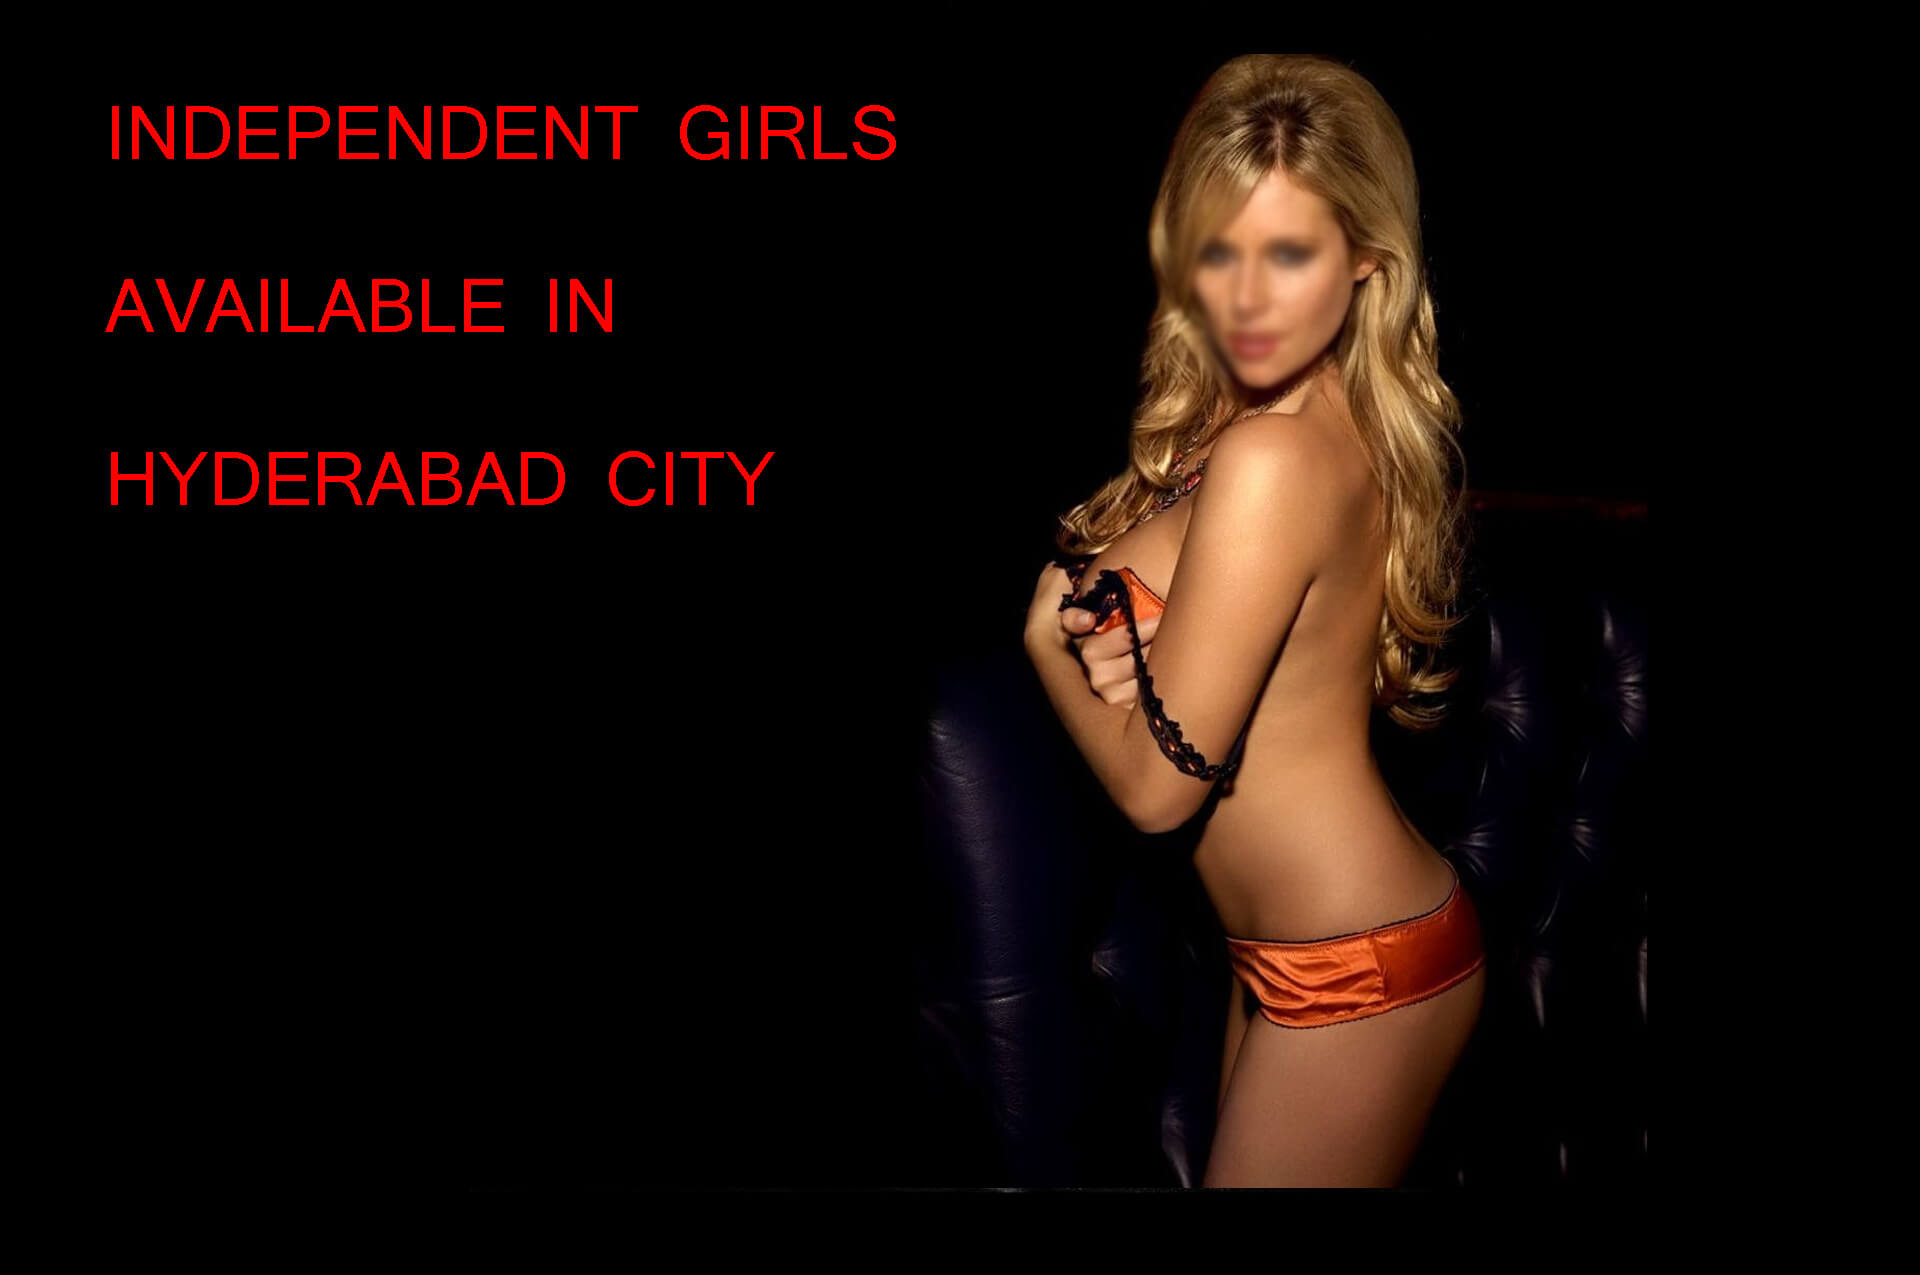 INDEPENDENT GIRLS IN HYDERABAD